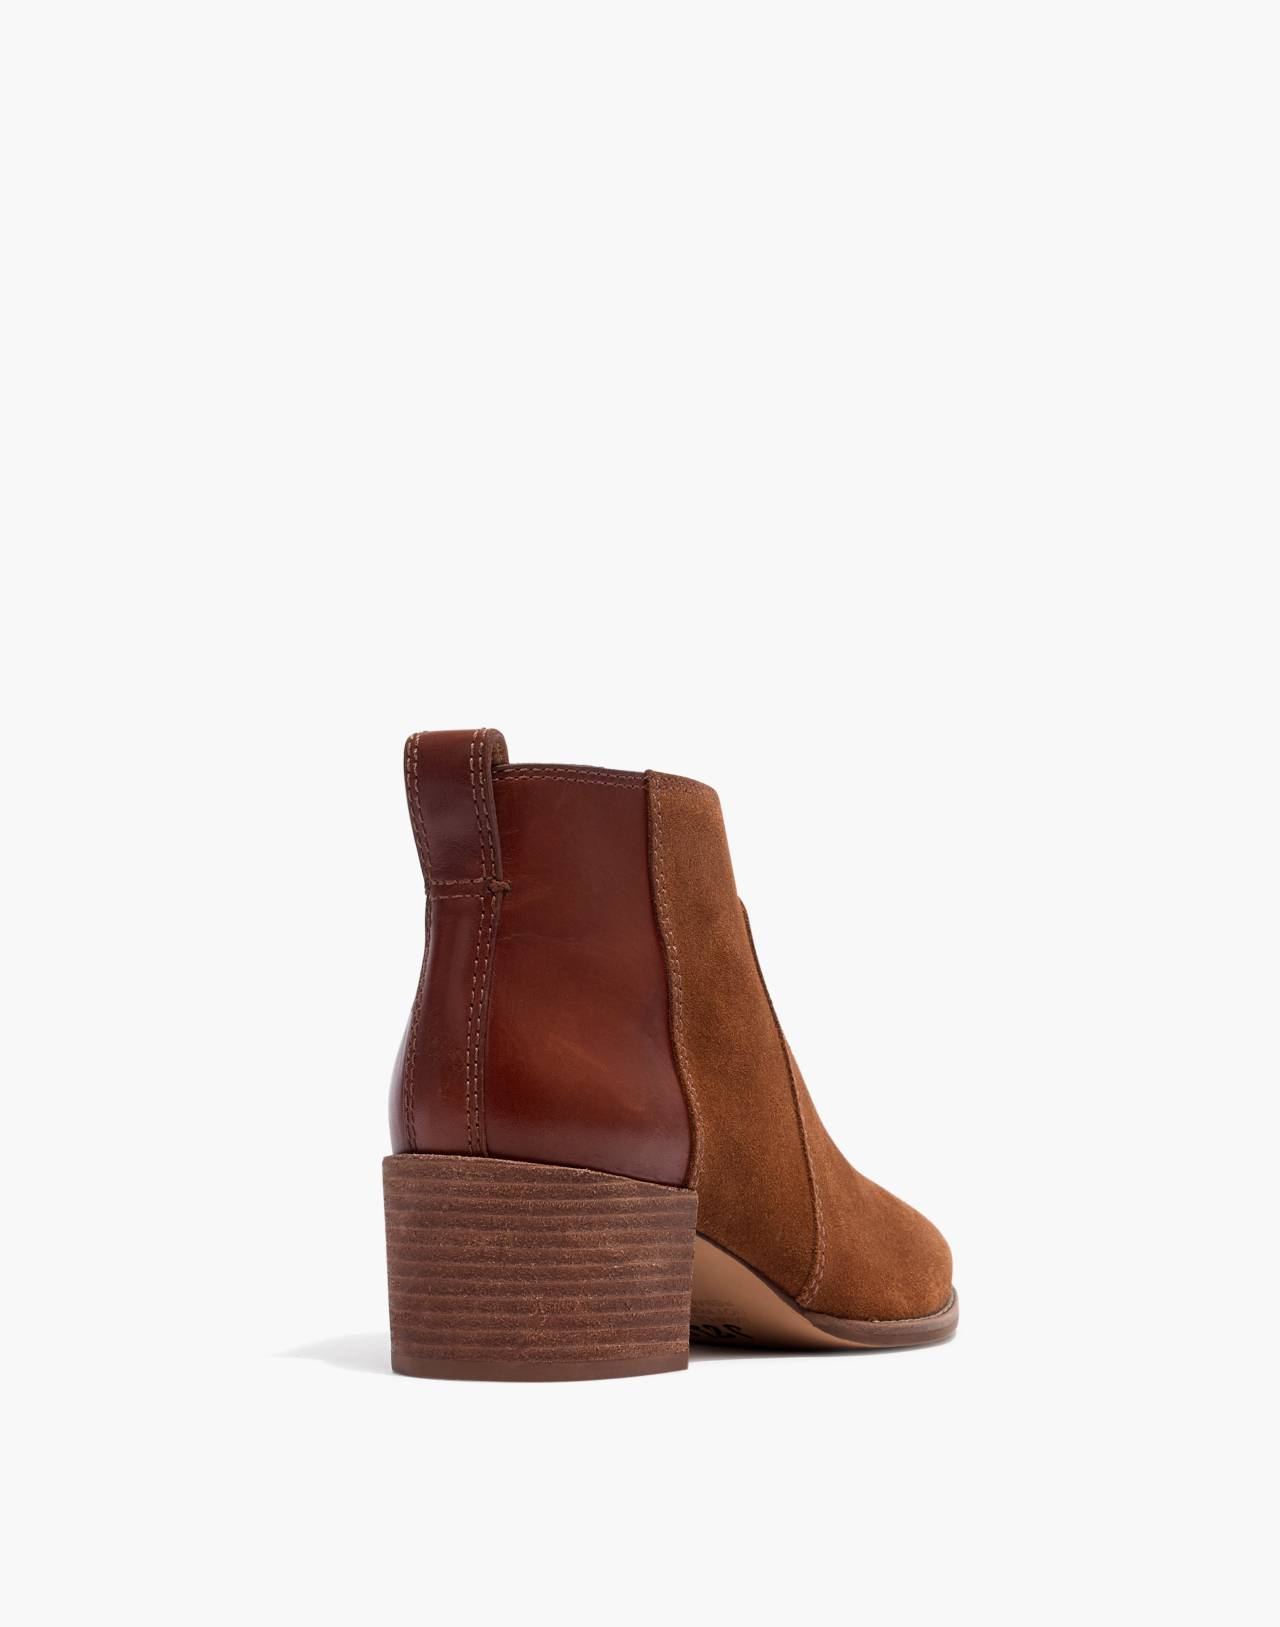 The Asher Boot in Suede and Leather in burnt sienna image 3